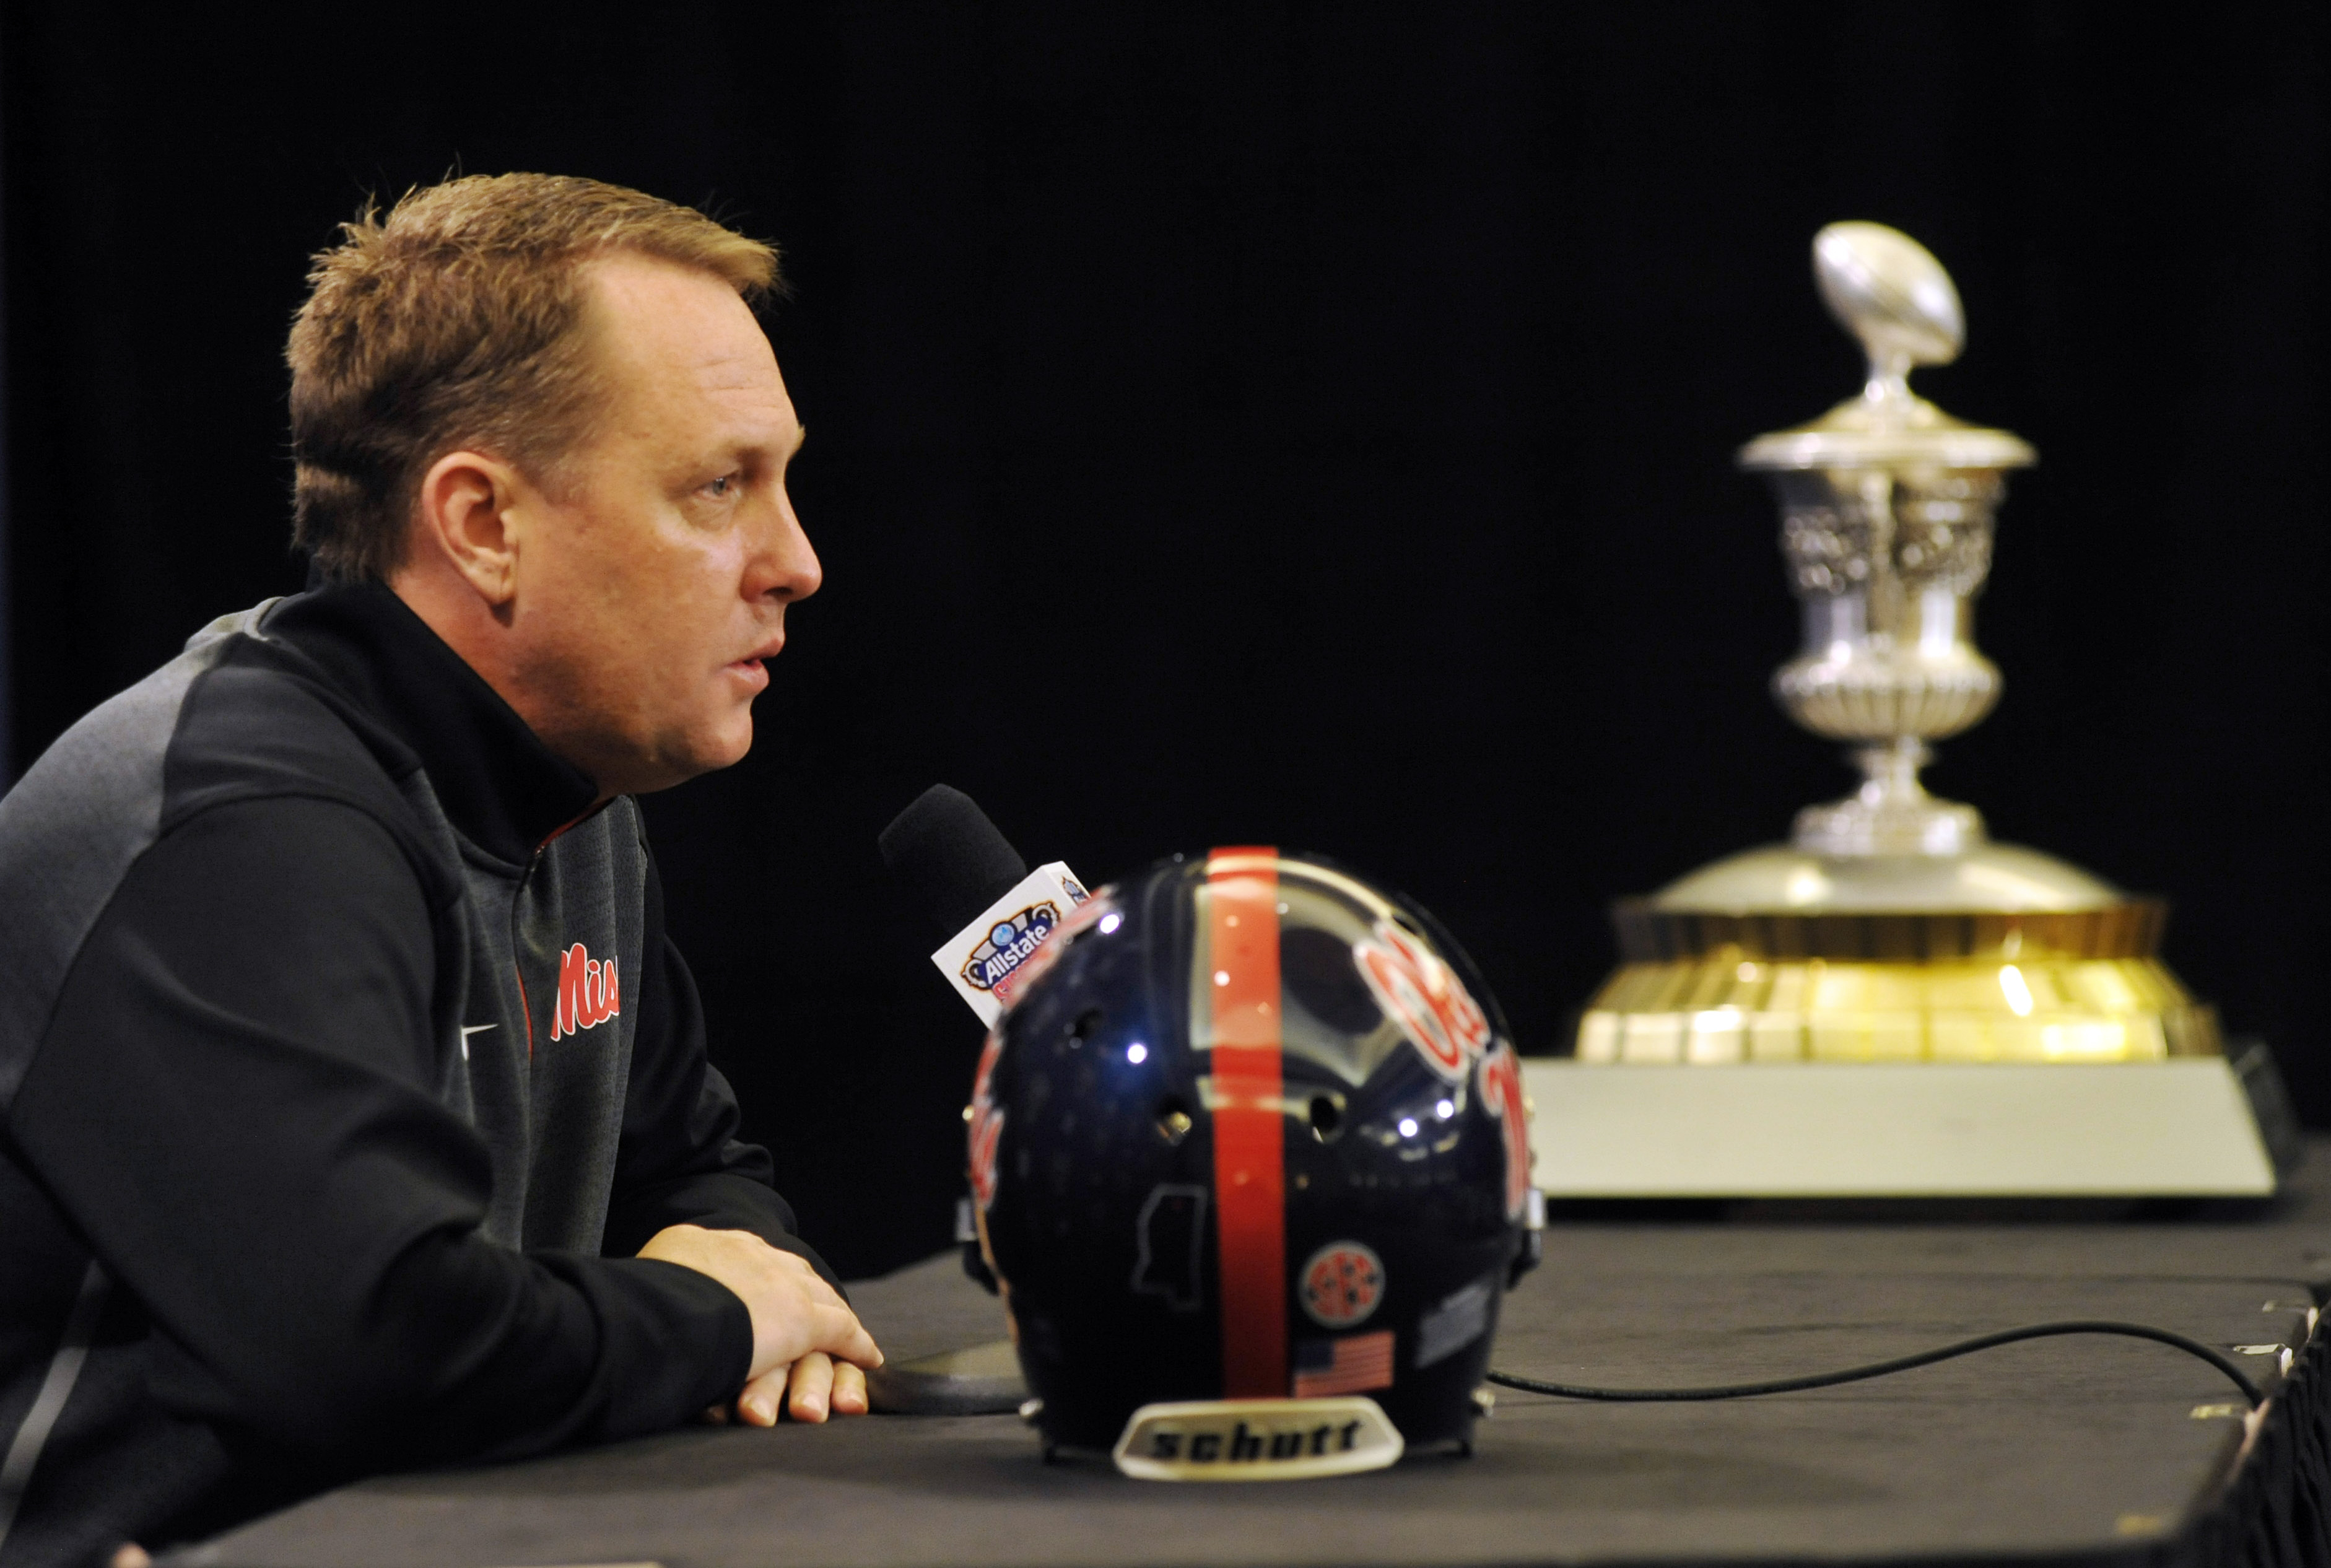 Mississippi head coach Hugh Freeze speaks speaks during a press conference for the Sugar Bow NCAA college football game, Thursday, Dec. 31, 2015, in New Orleans. Mississippi plays Oklahoma State on New Year's Day.  (Bruce Newman/The Oxford Eagle via AP)